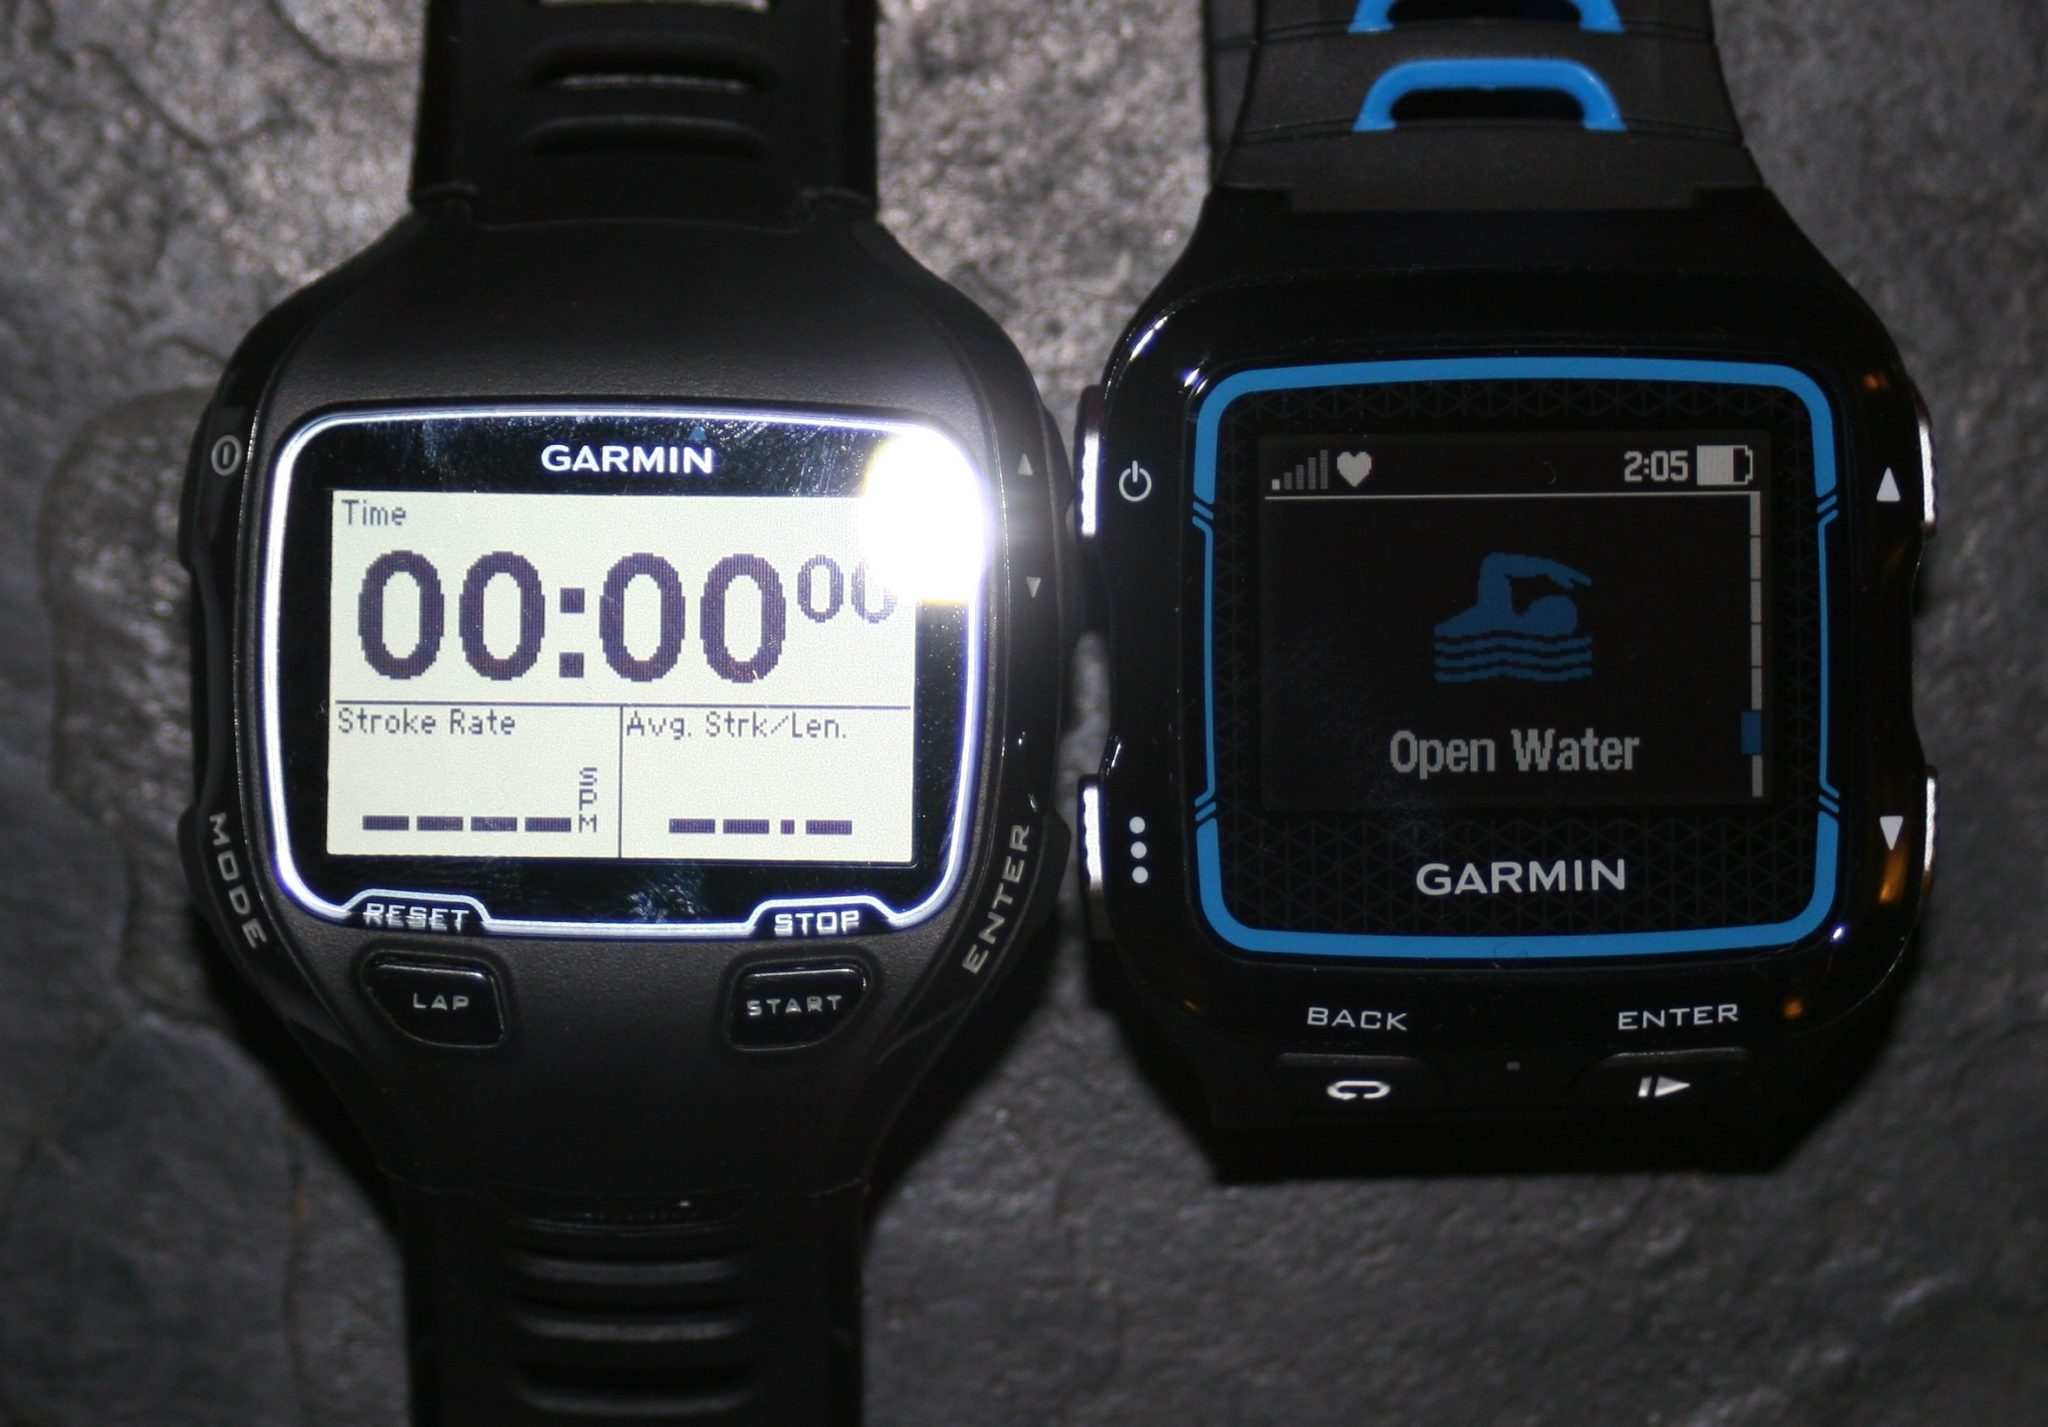 Garmin 920XT vs Garmin 910XT - Triathlon Showdown